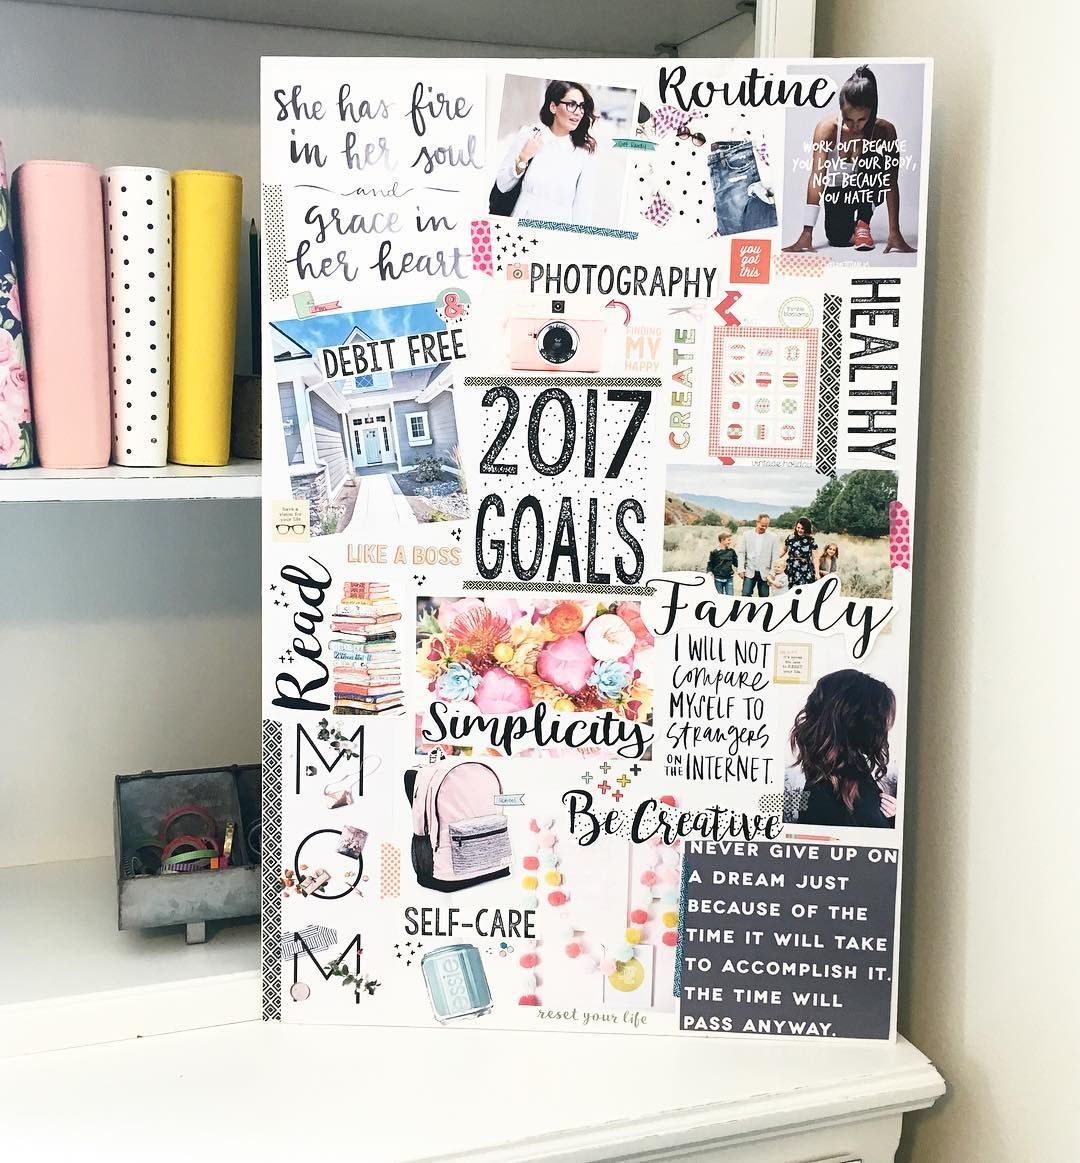 You want to know how to create a vision board that helps you